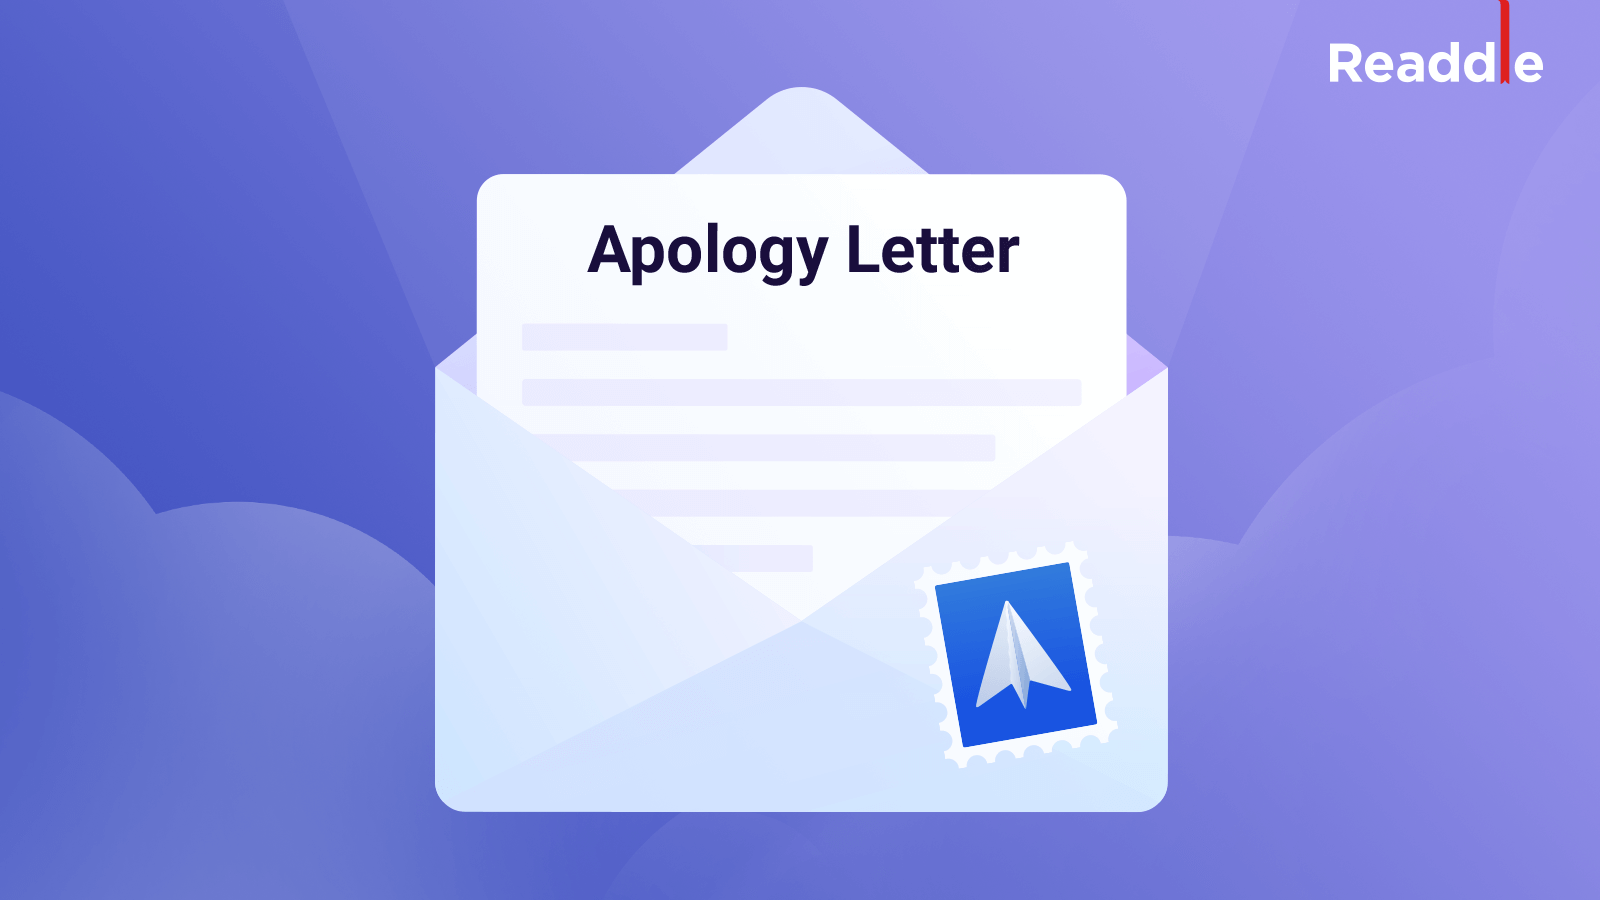 How To Write An Apology Letter 5 Templates And Writing Tips